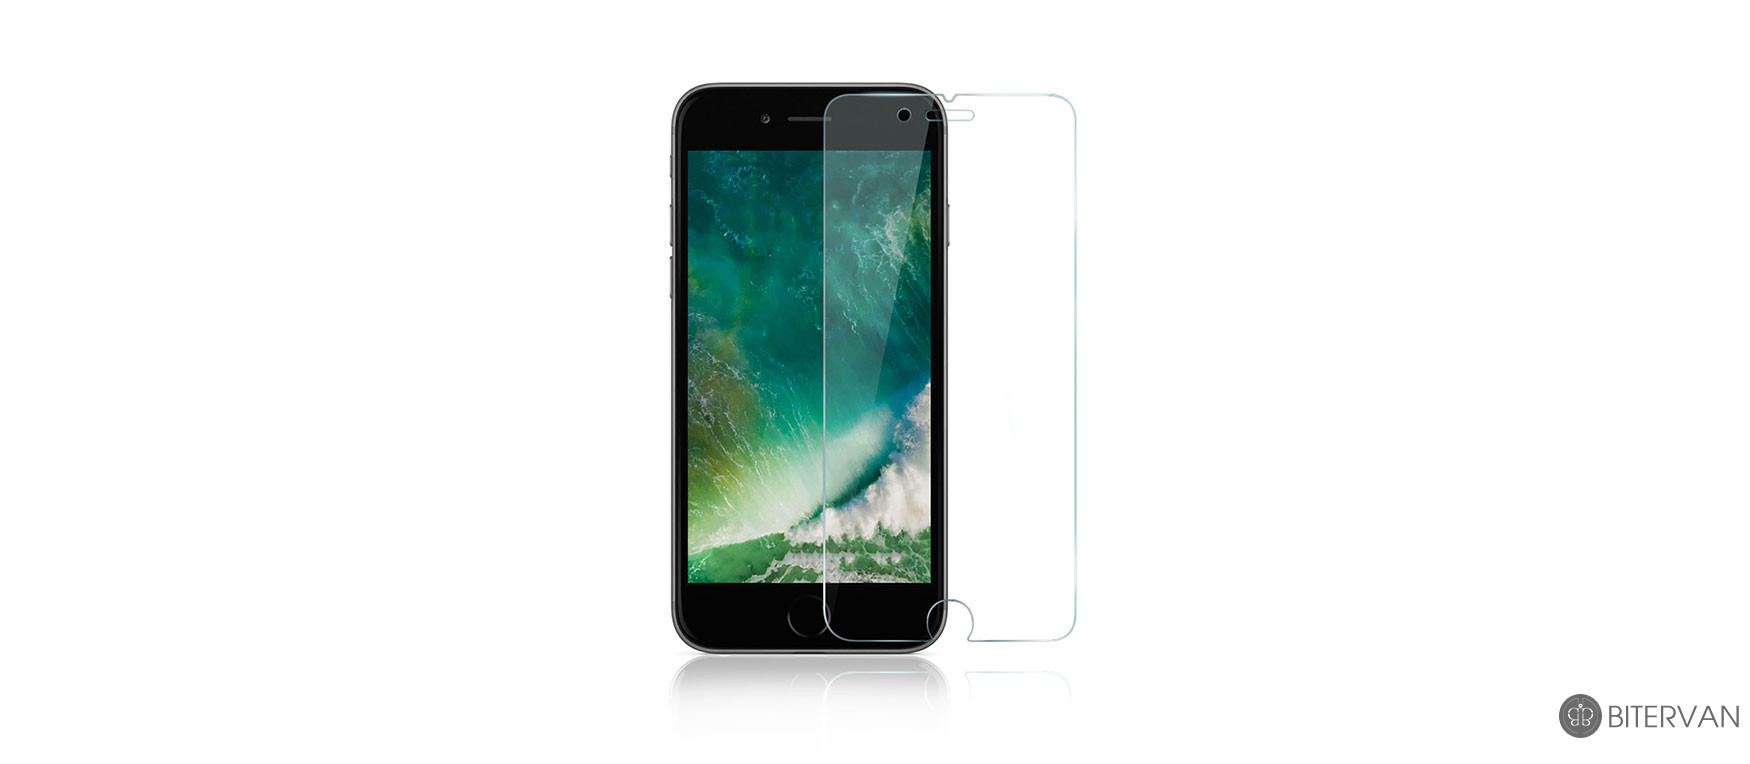 Anker A7472 Tempered glass screen protector for iphone 7 plus - Clear